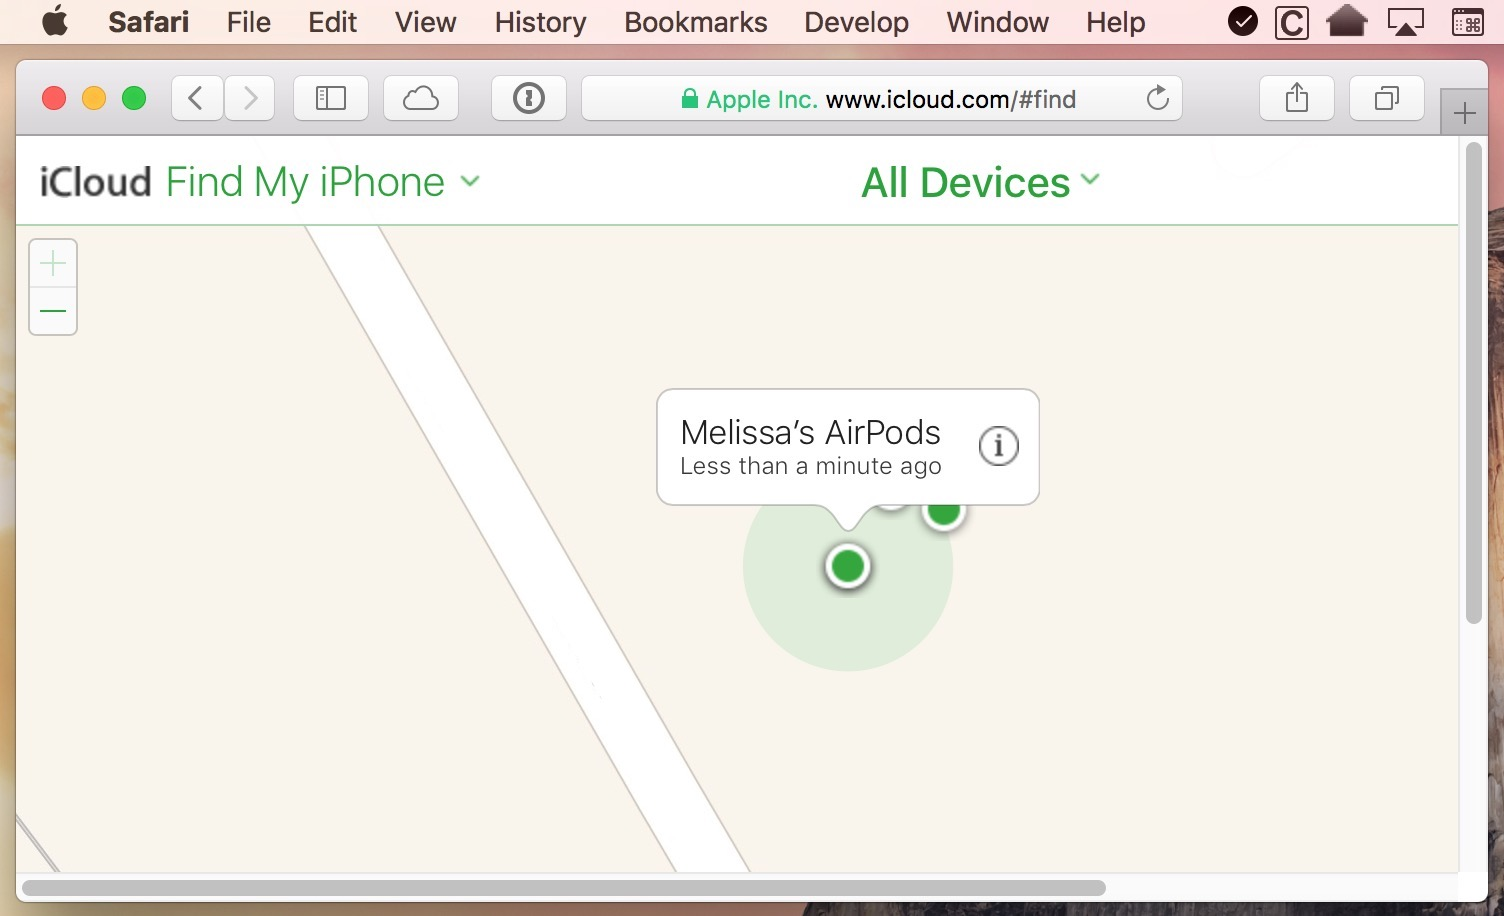 iCloud.com includes a Find my iPhone page you can use to locate your AirPods